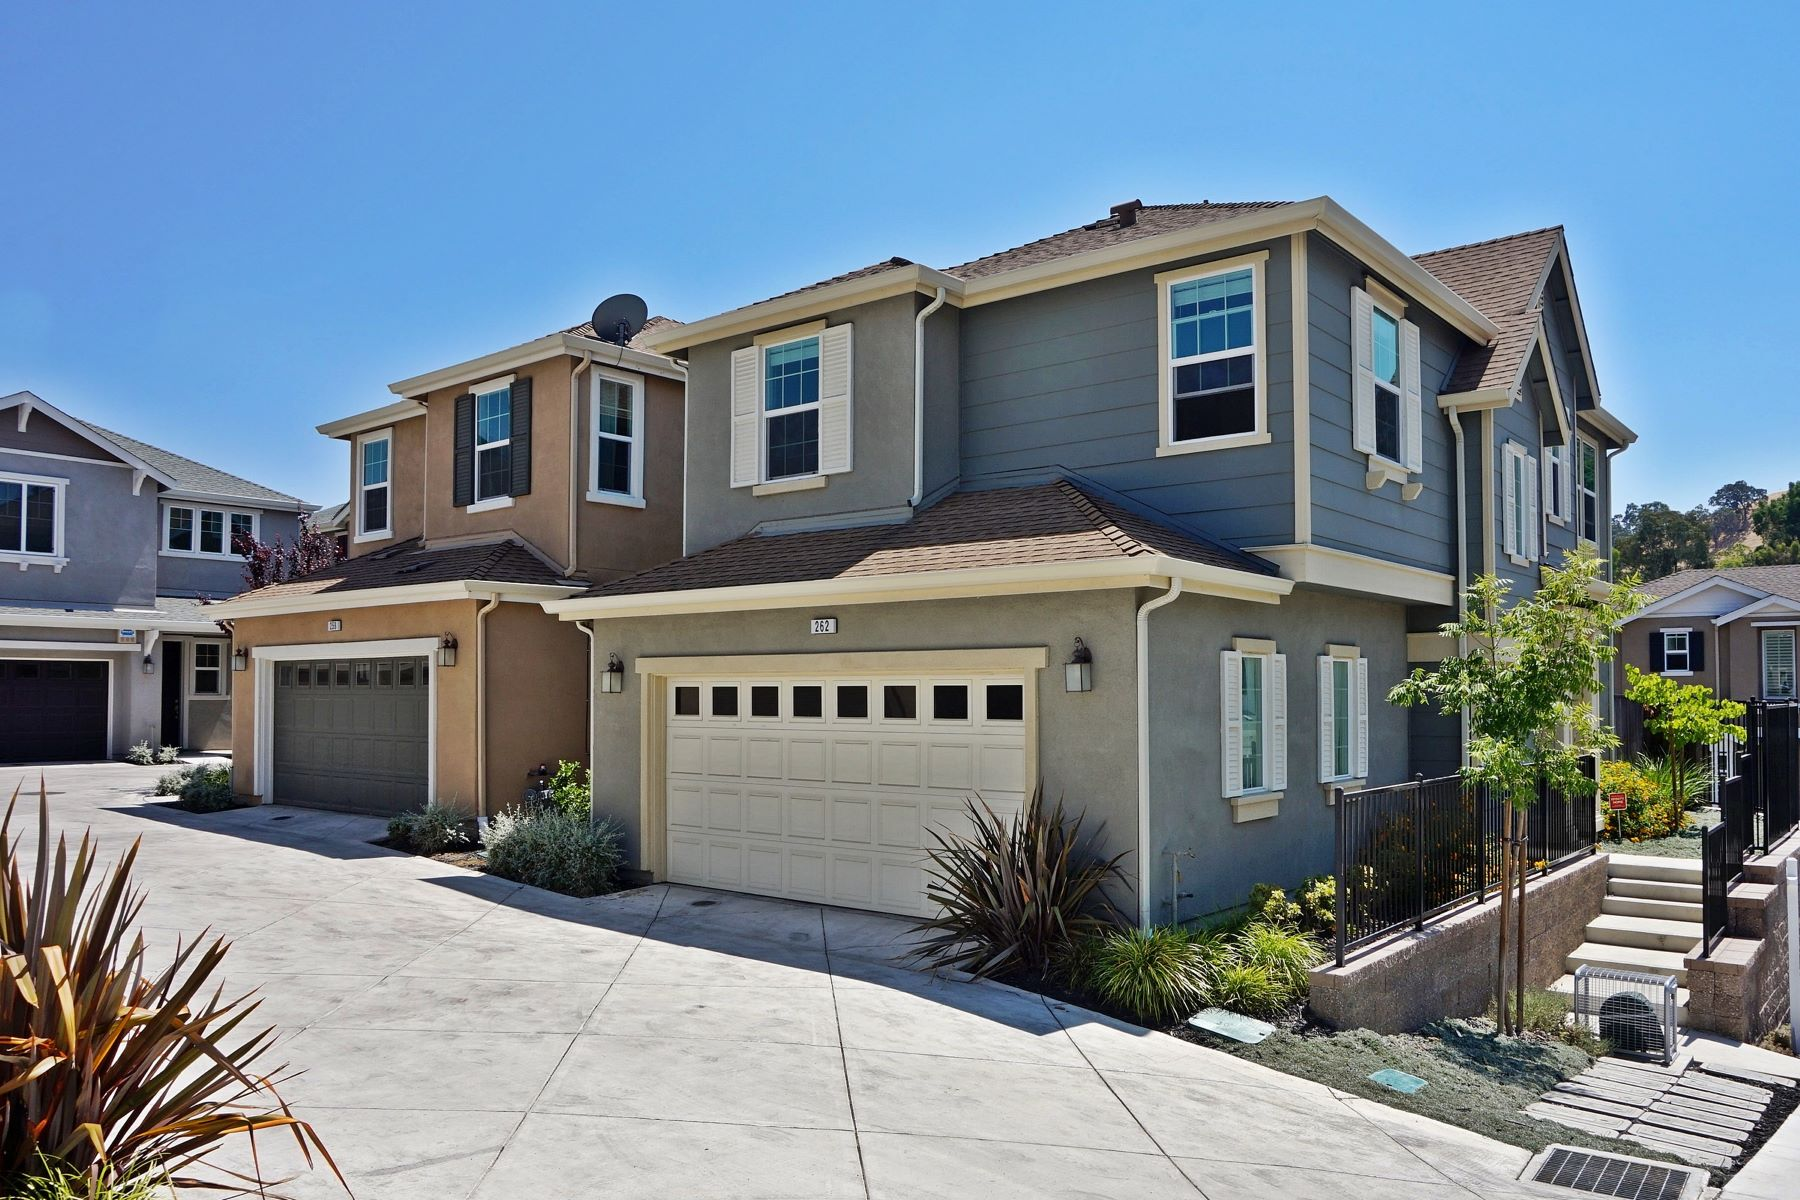 Single Family Home for Sale at Modern Martinez Beauty 262 Ladybug Lane Martinez, California 94553 United States